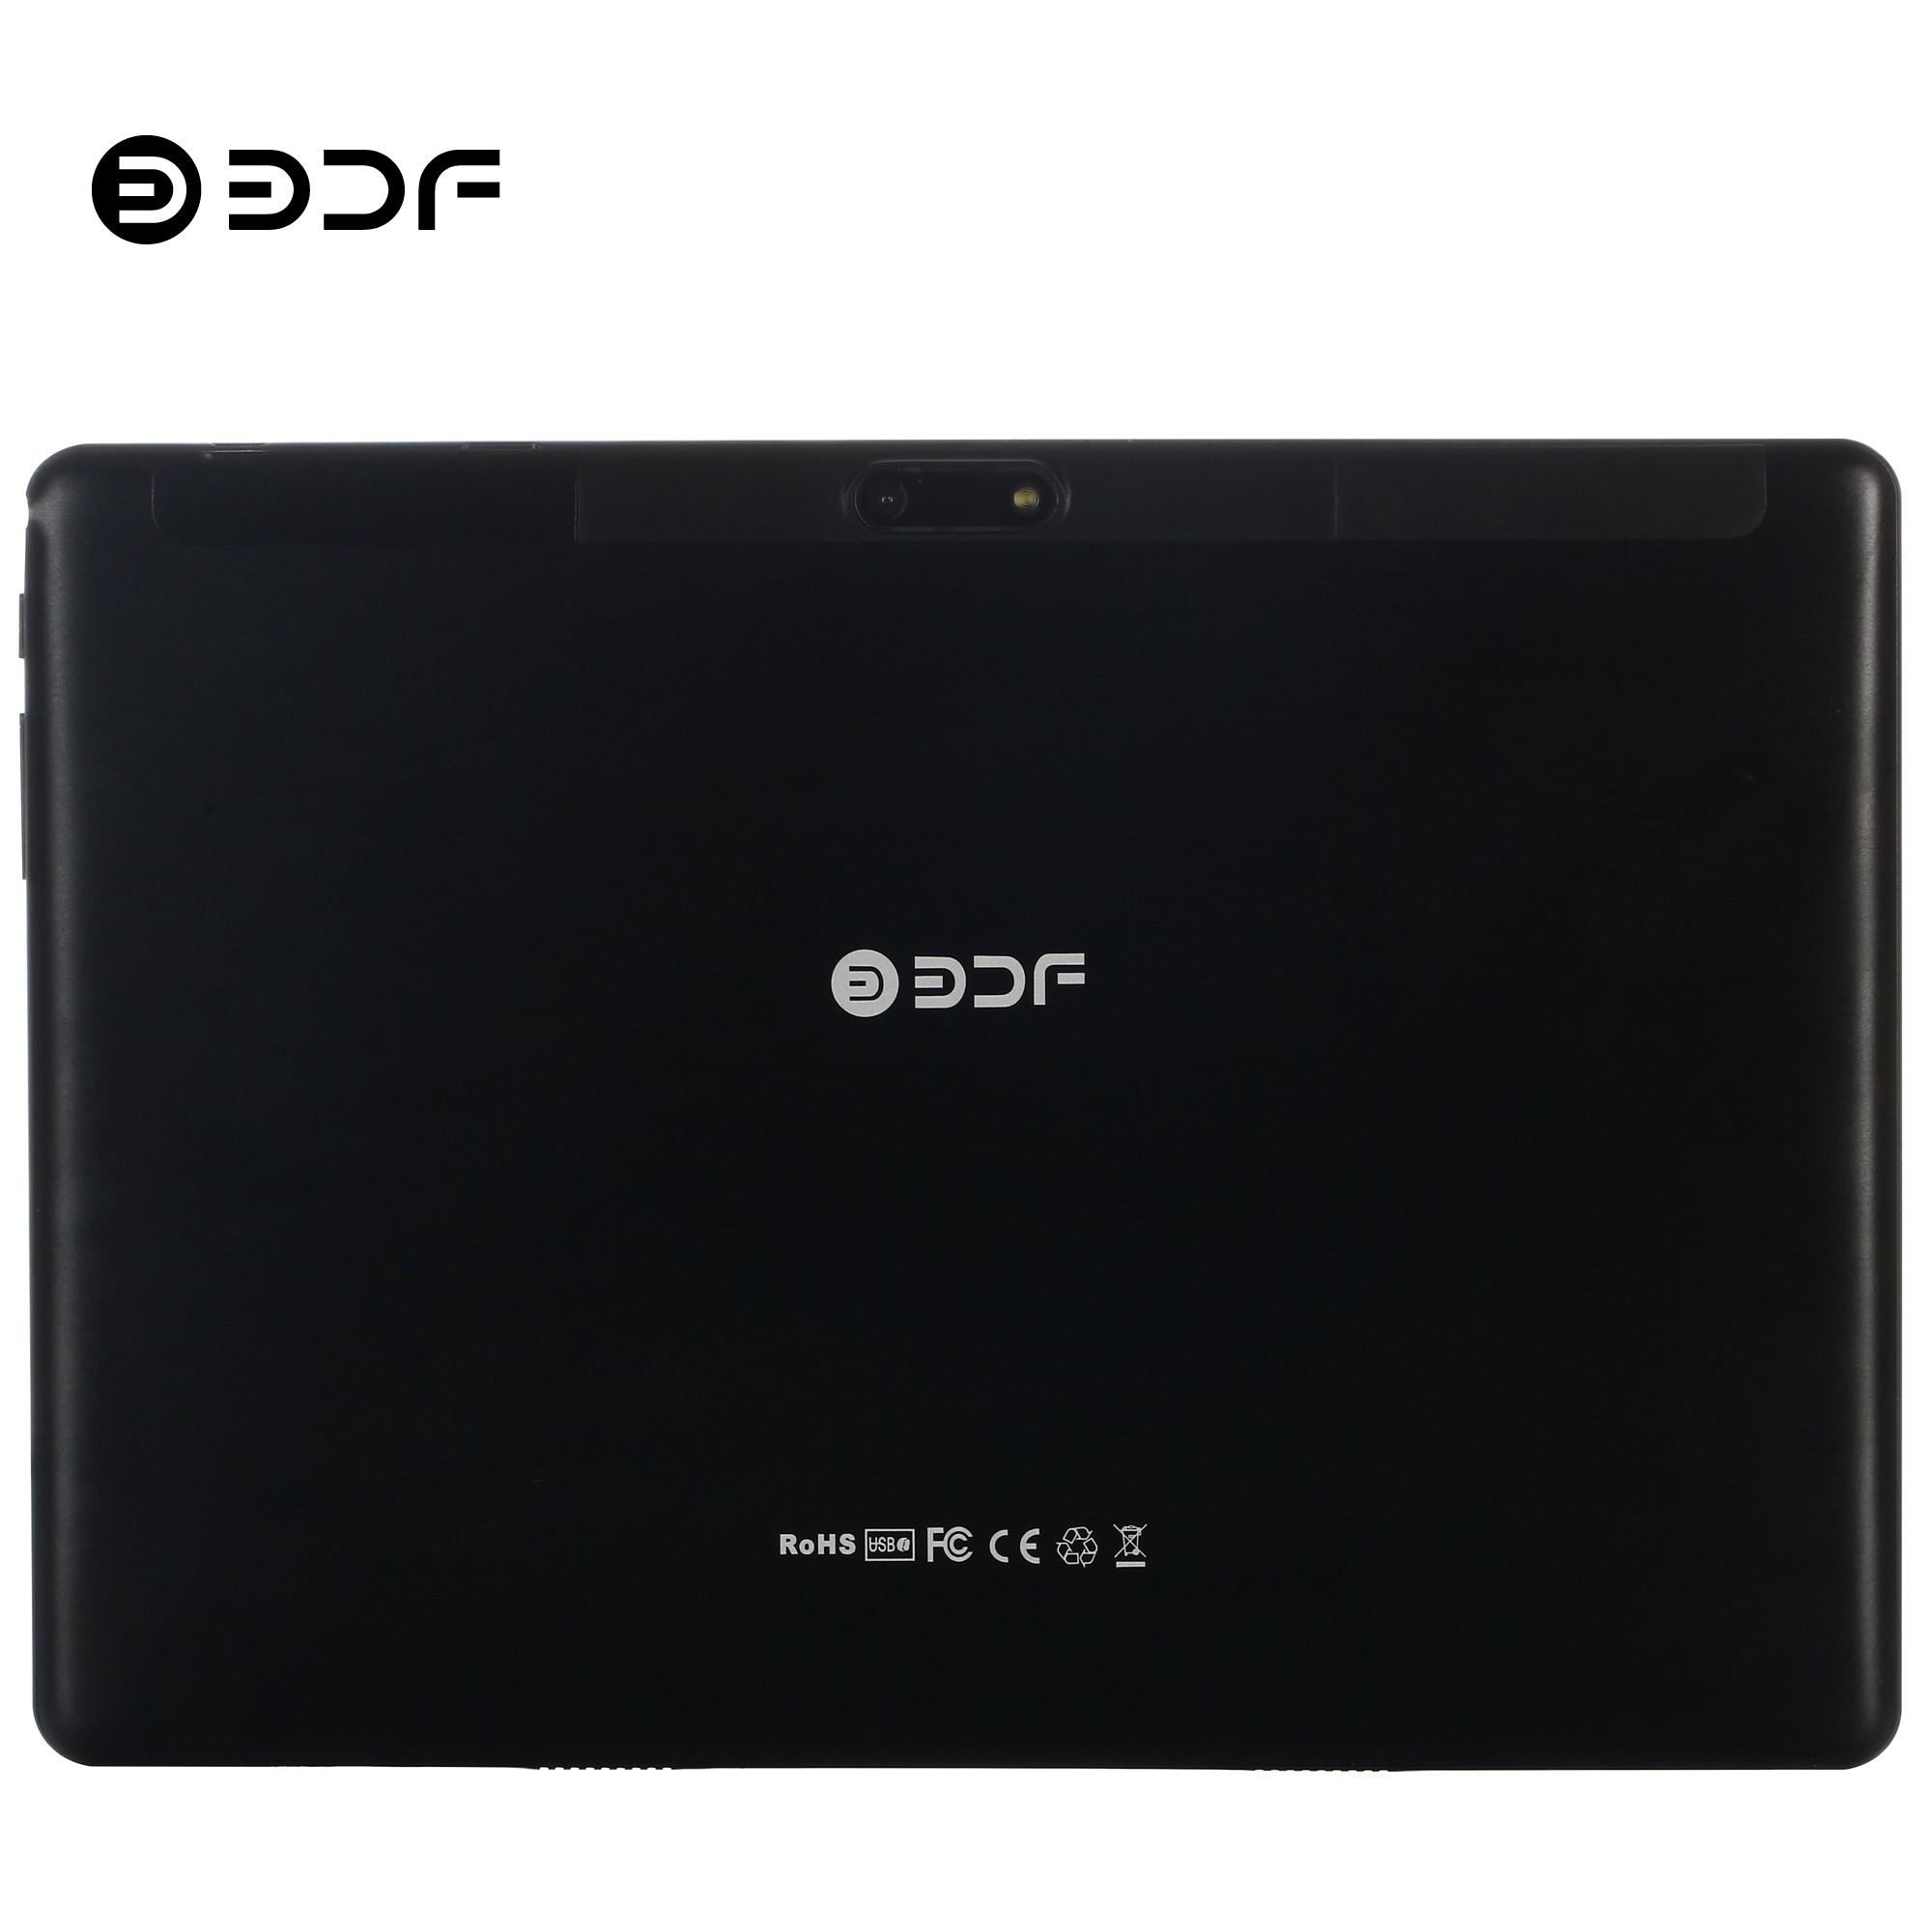 BDF 2020 New Tablet Pc 10 Inch Android 7.0 Tablets 1GB+32GB Quad Core 3G Phone Call IPS Pc Tablet WiFi GPS 10.1 Inch Tablets